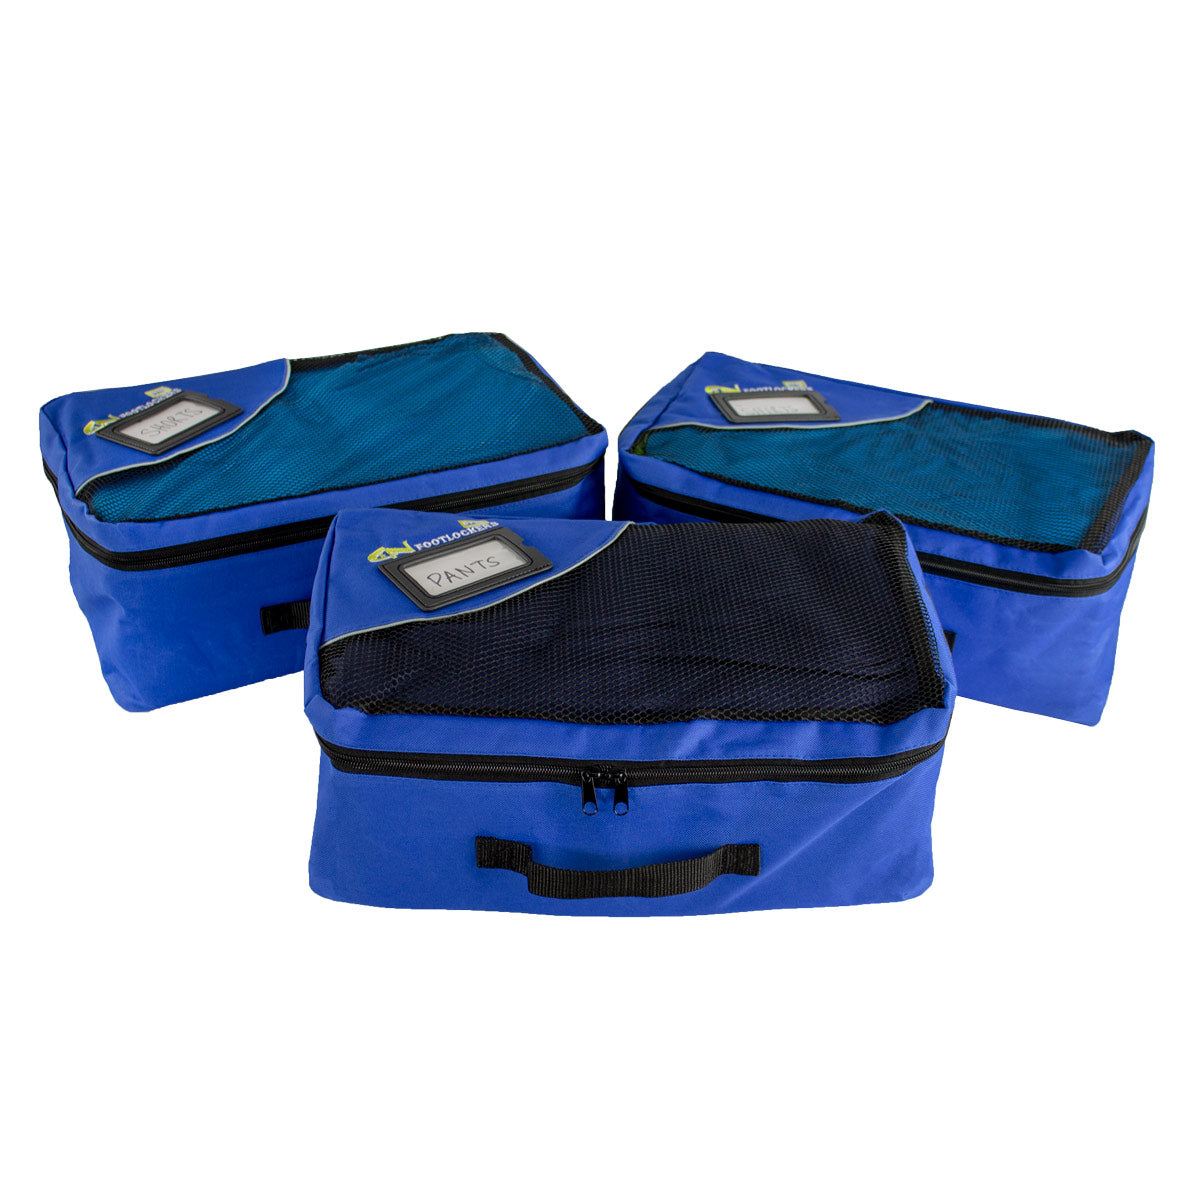 Packing Cubes Set of 3